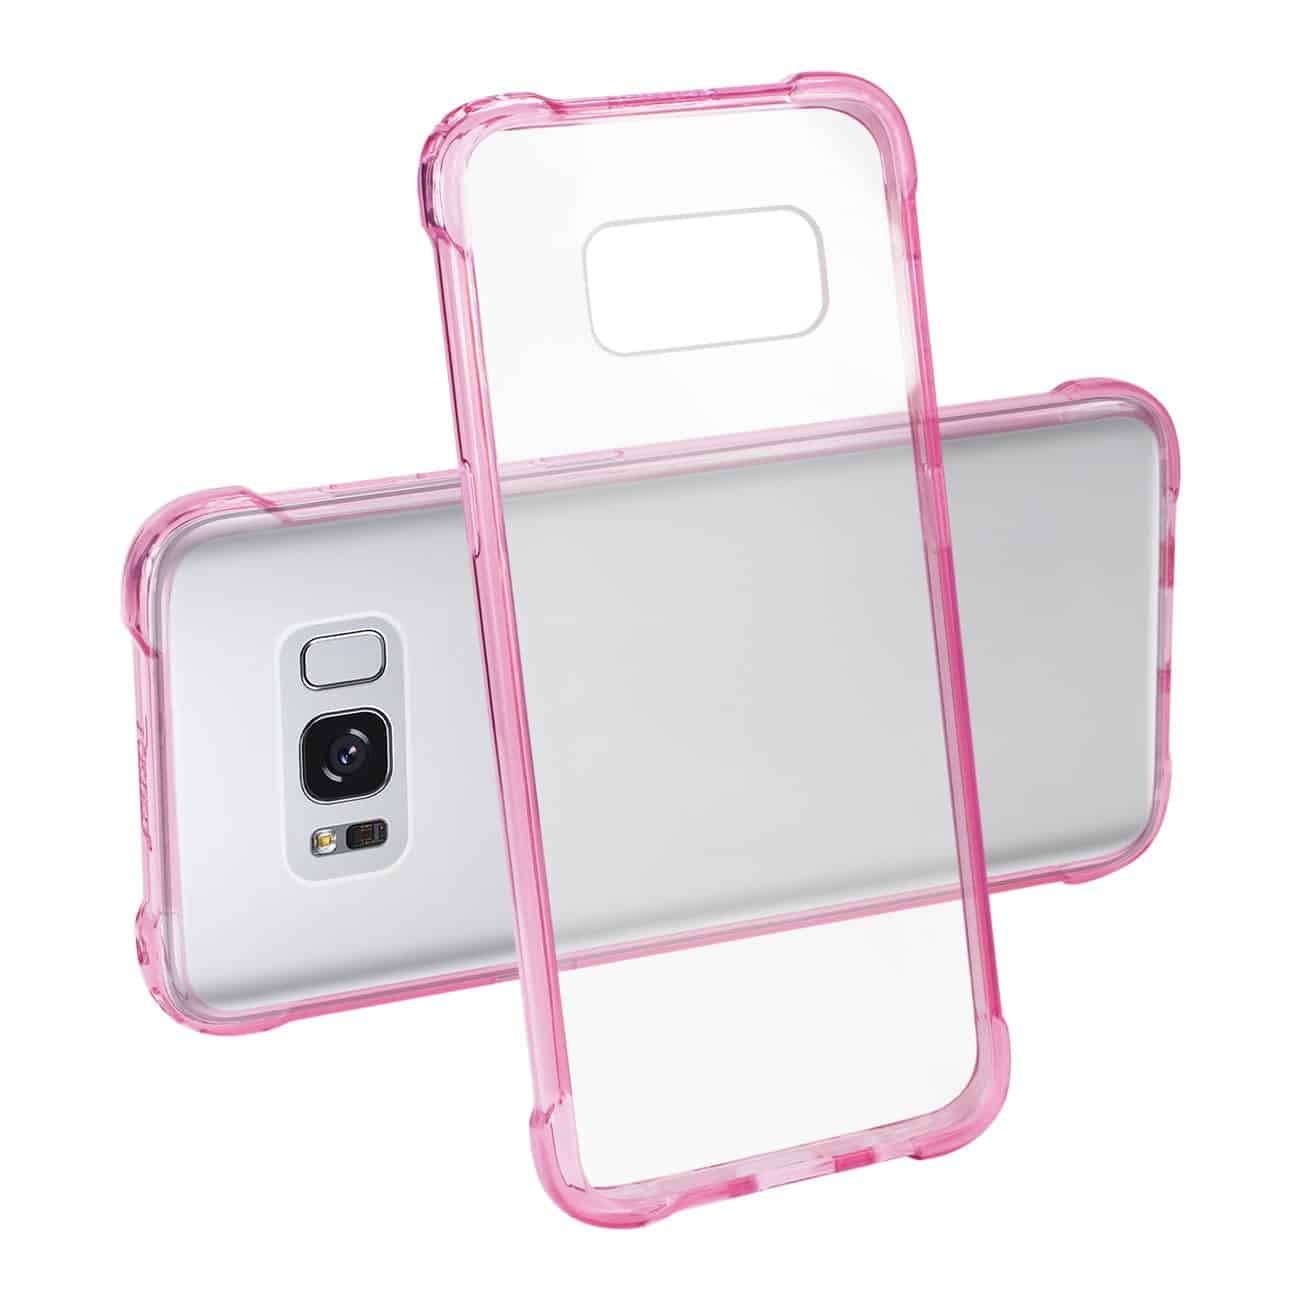 Samsung Galaxy S8 Edge/ S8 Plus Clear Bumper Case With Air Cushion Protection In Clear Hot Pink